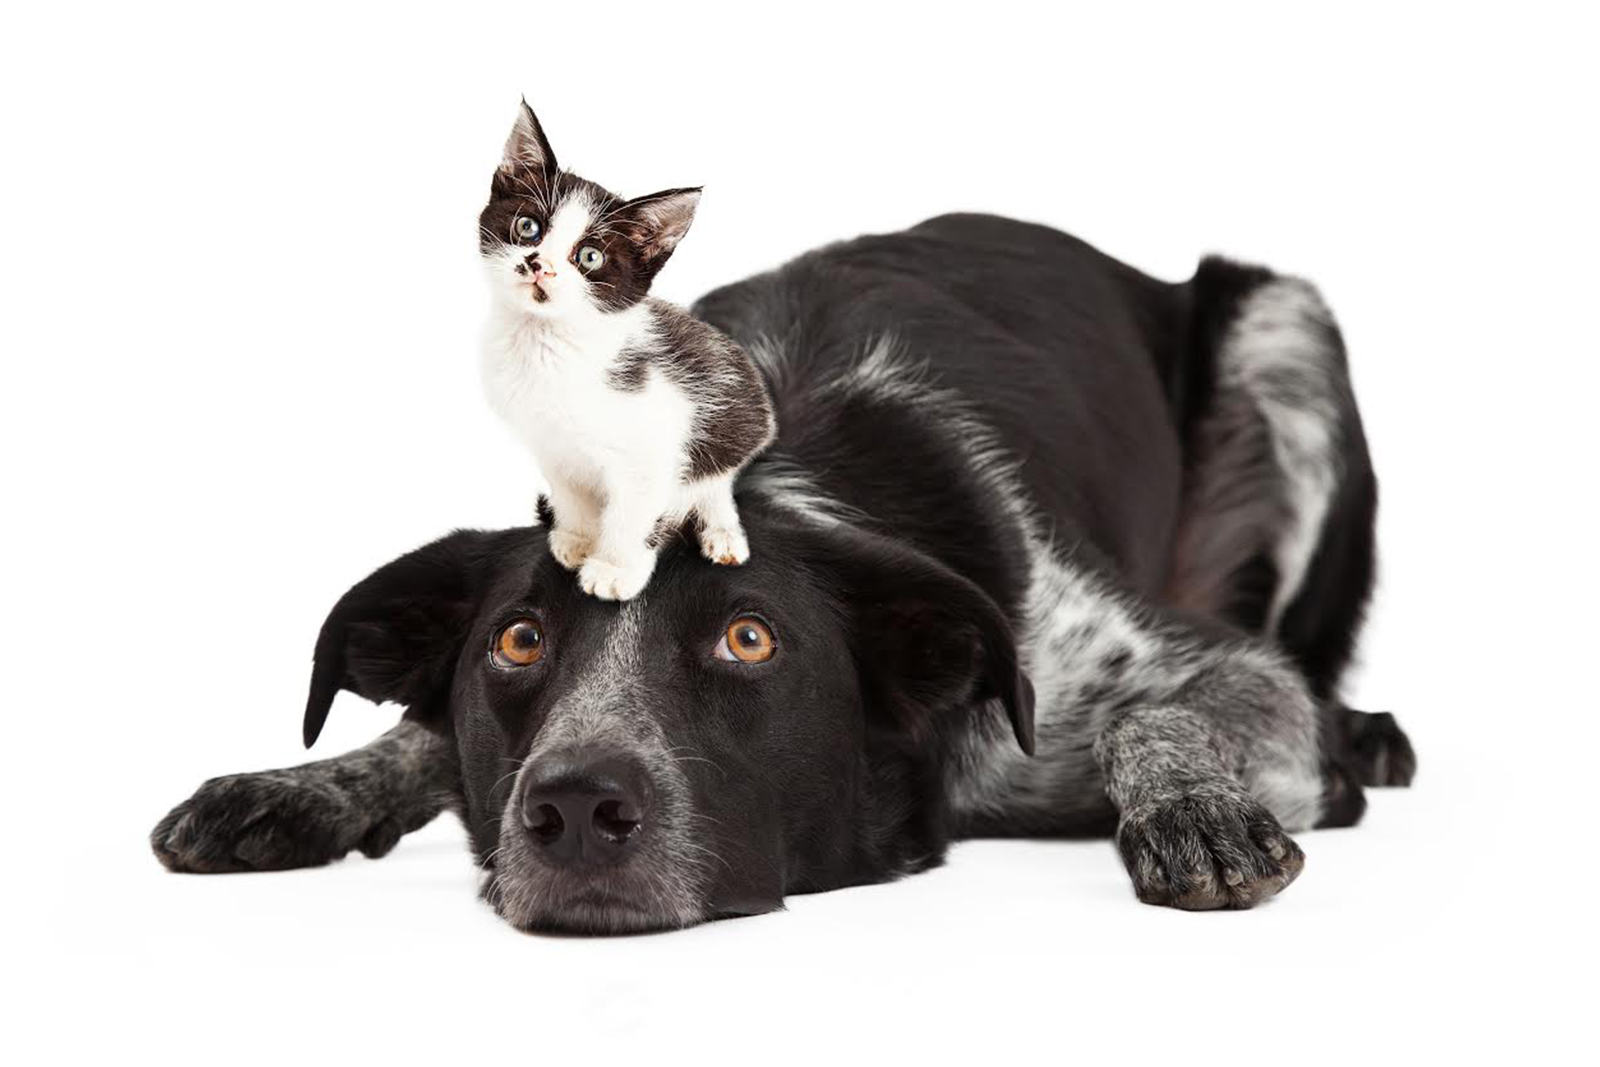 CHARITY OF THE MONTH: Cove Animal Rescue